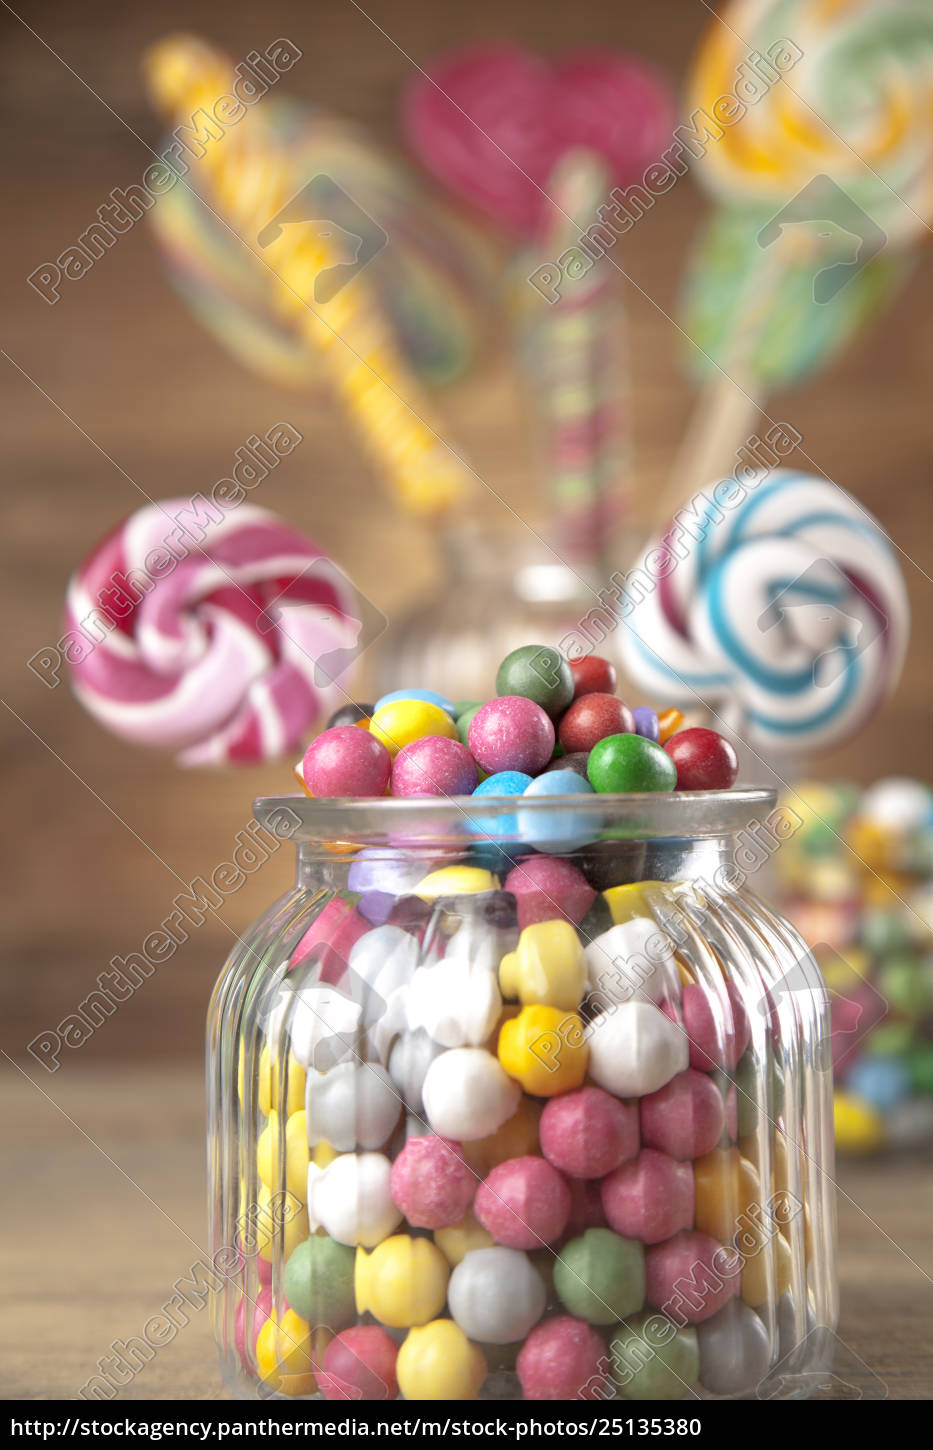 different, colorful, sweets, and, lollipops - 25135380